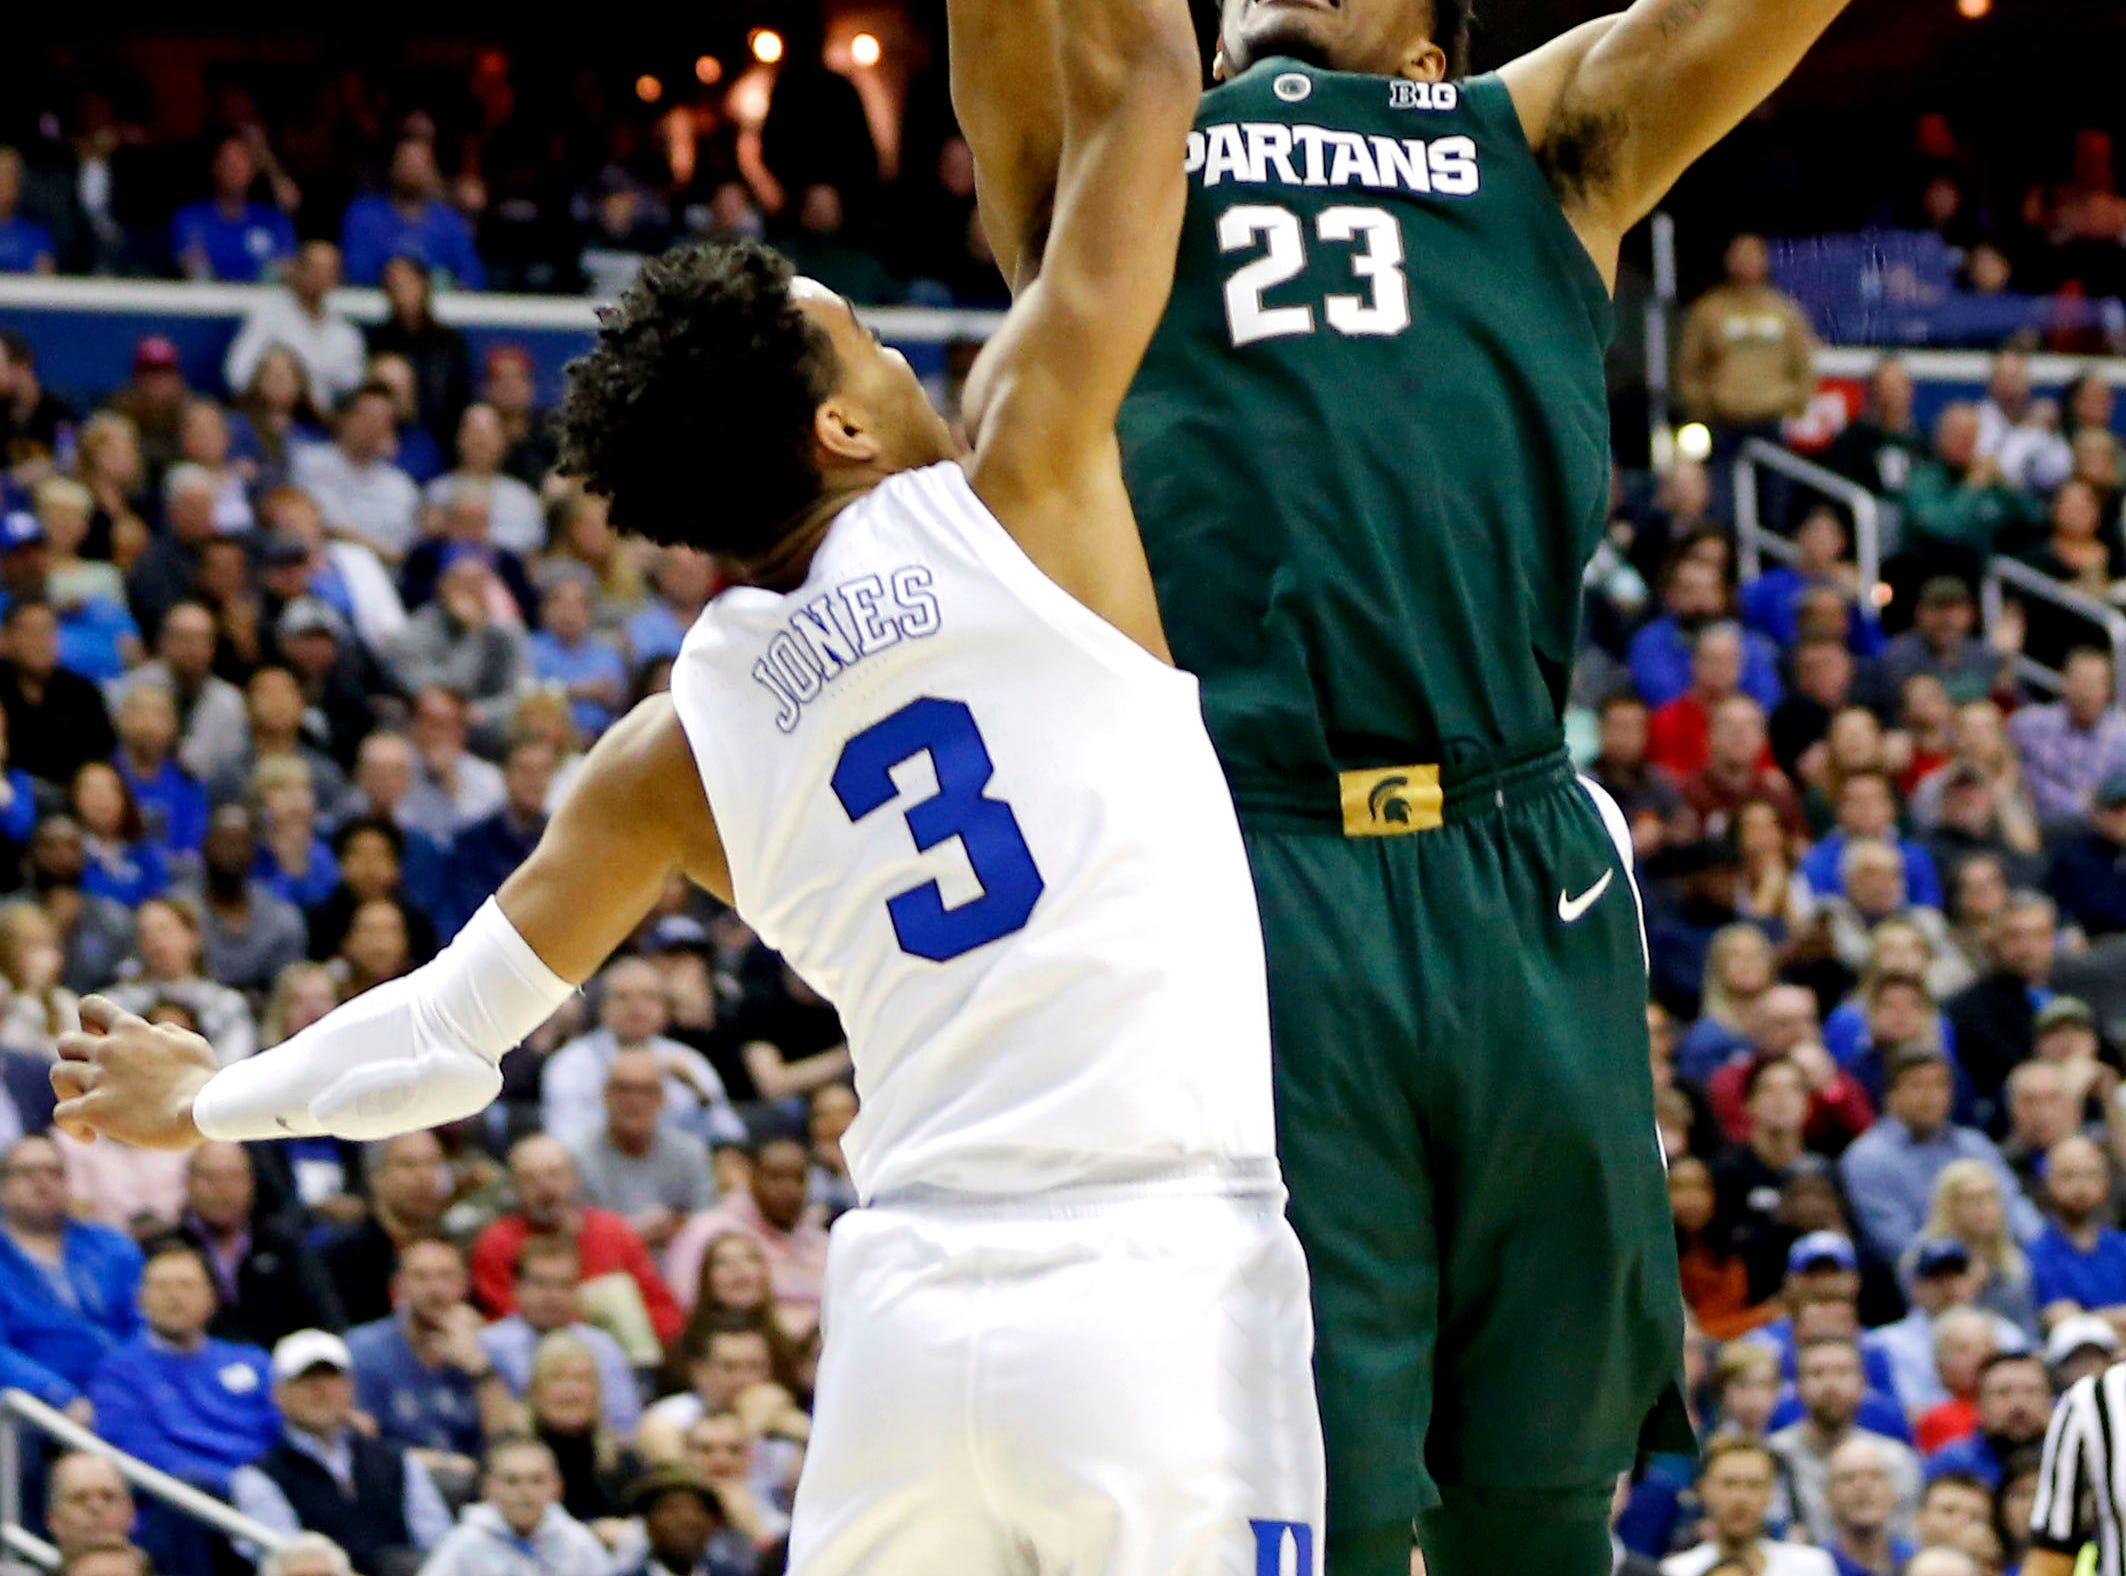 Michigan State Spartans forward Xavier Tillman (23) shoots the ball against Duke Blue Devils guard Tre Jones (3) during the first half in the championship game of the east regional of the 2019 NCAA Tournament at Capital One Arena.